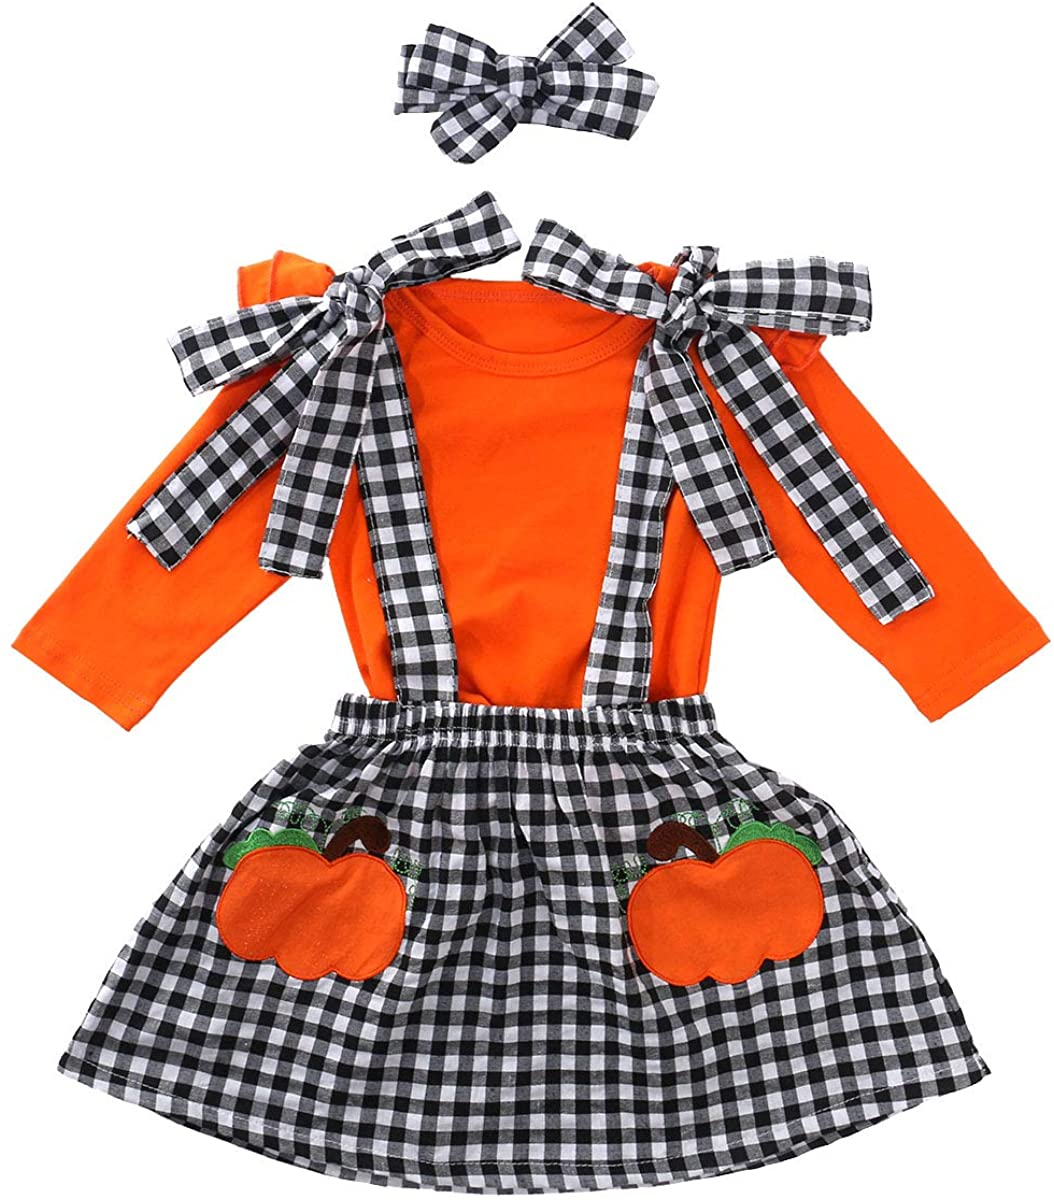 Halloween Toddler Baby Girls Outfit Ruffle Long Sleeve Top +Bowknot Suspender Pumpkin Skirt +Headband Fall Clothes Set